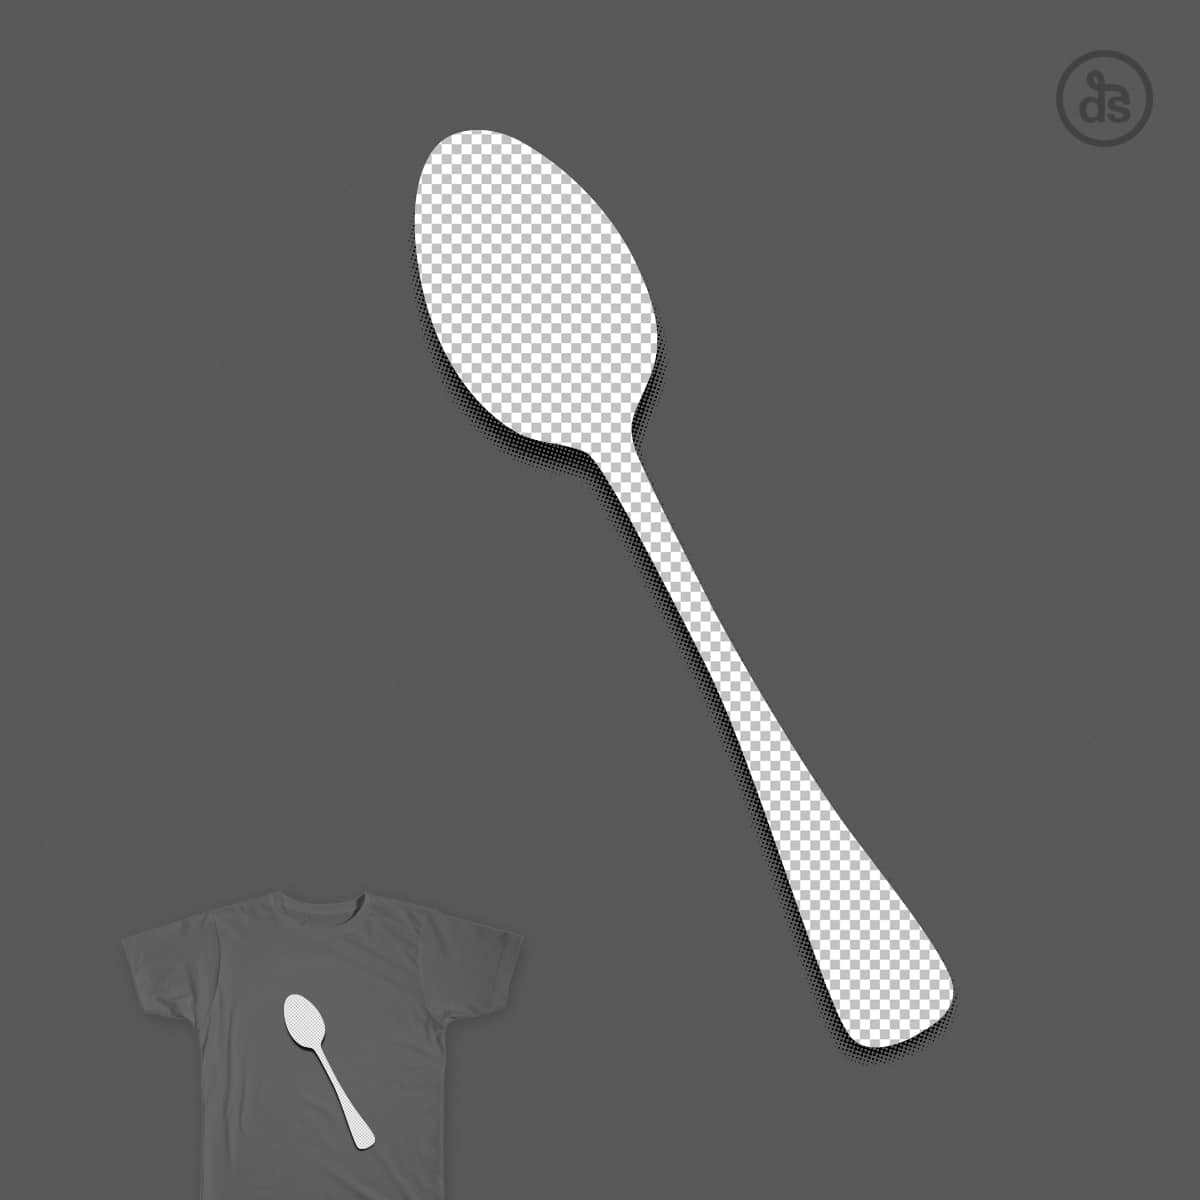 There is No Spoon by dschwen on Threadless